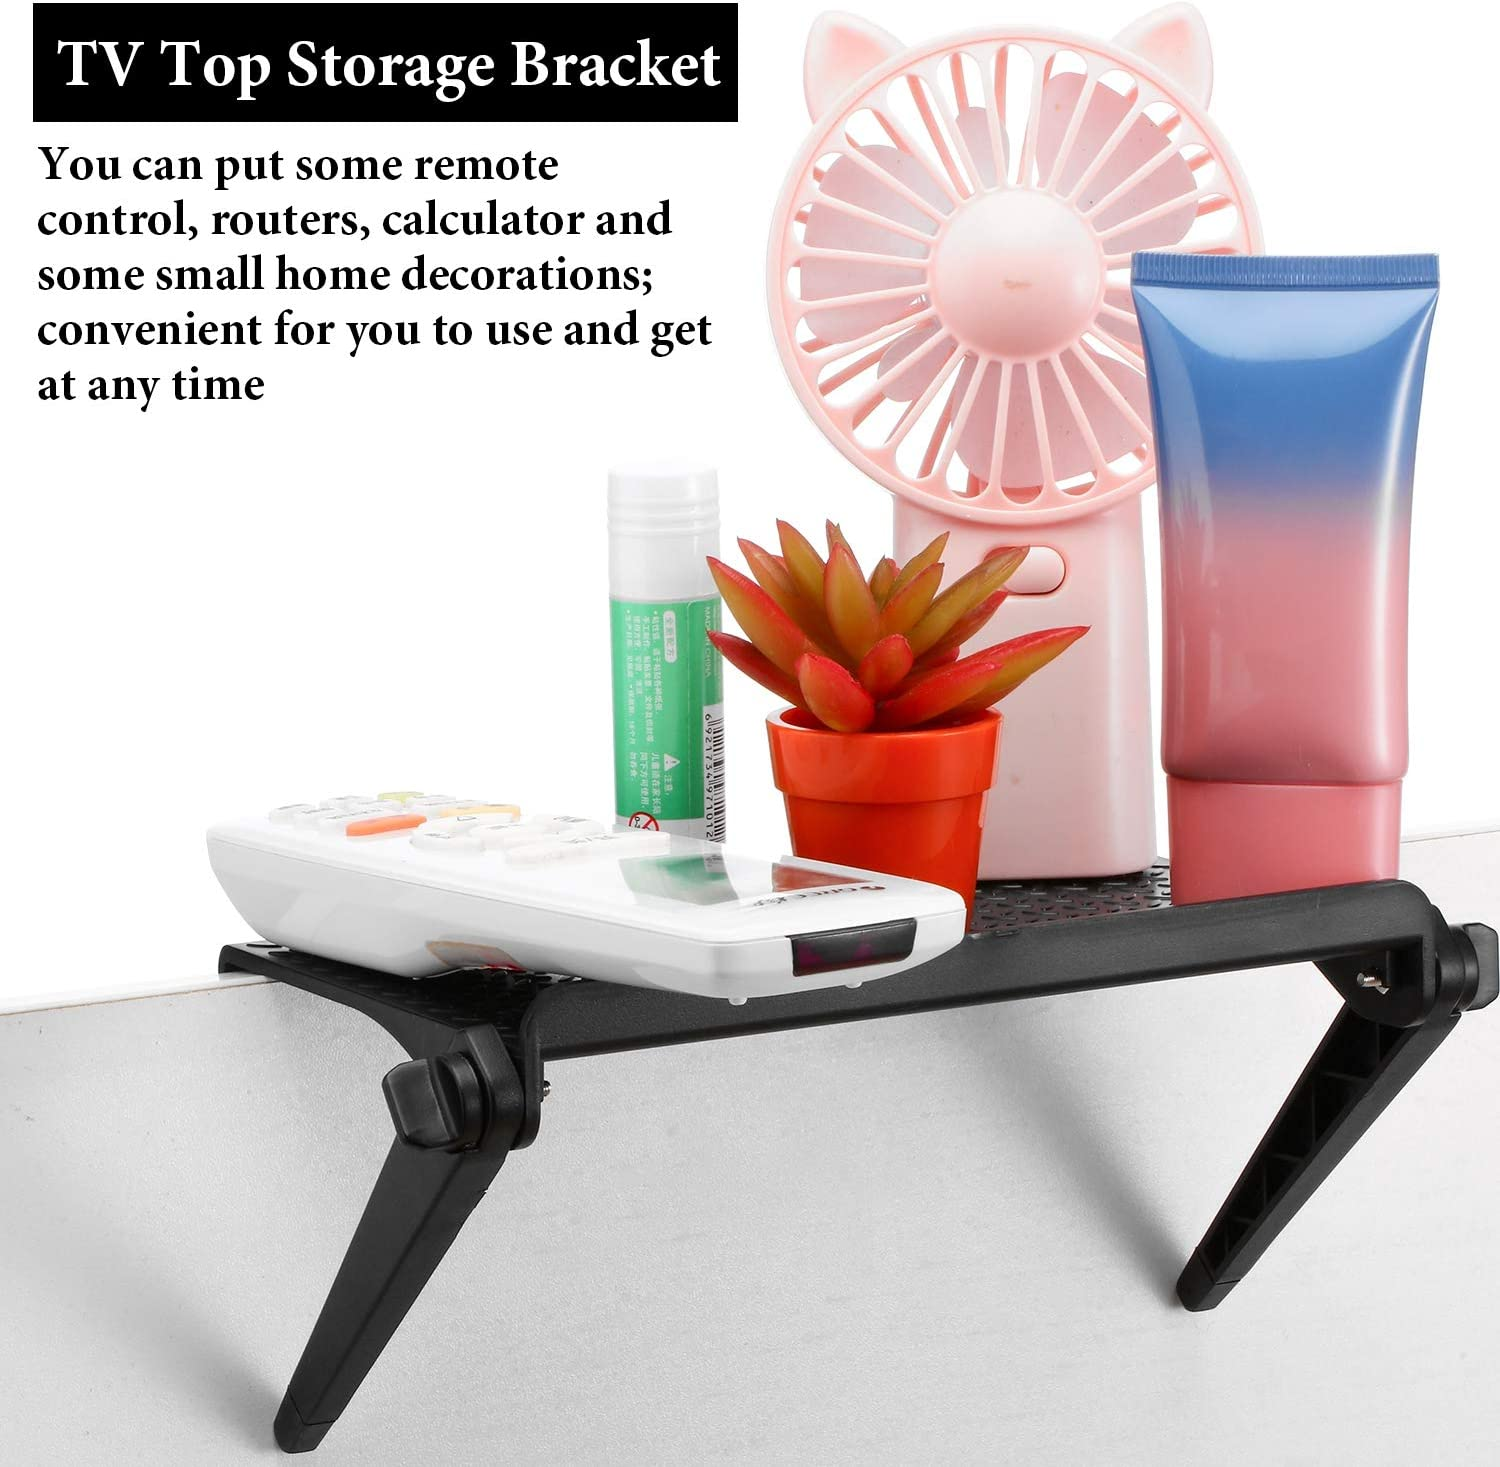 Game Console and Home Decor 3 Pieces Screen Top Shelf 8.5 Inch TV Top Storage Bracket 2-Leg Adjustable Monitor Top Shelf for Cellphone Stand Media Boxes Router